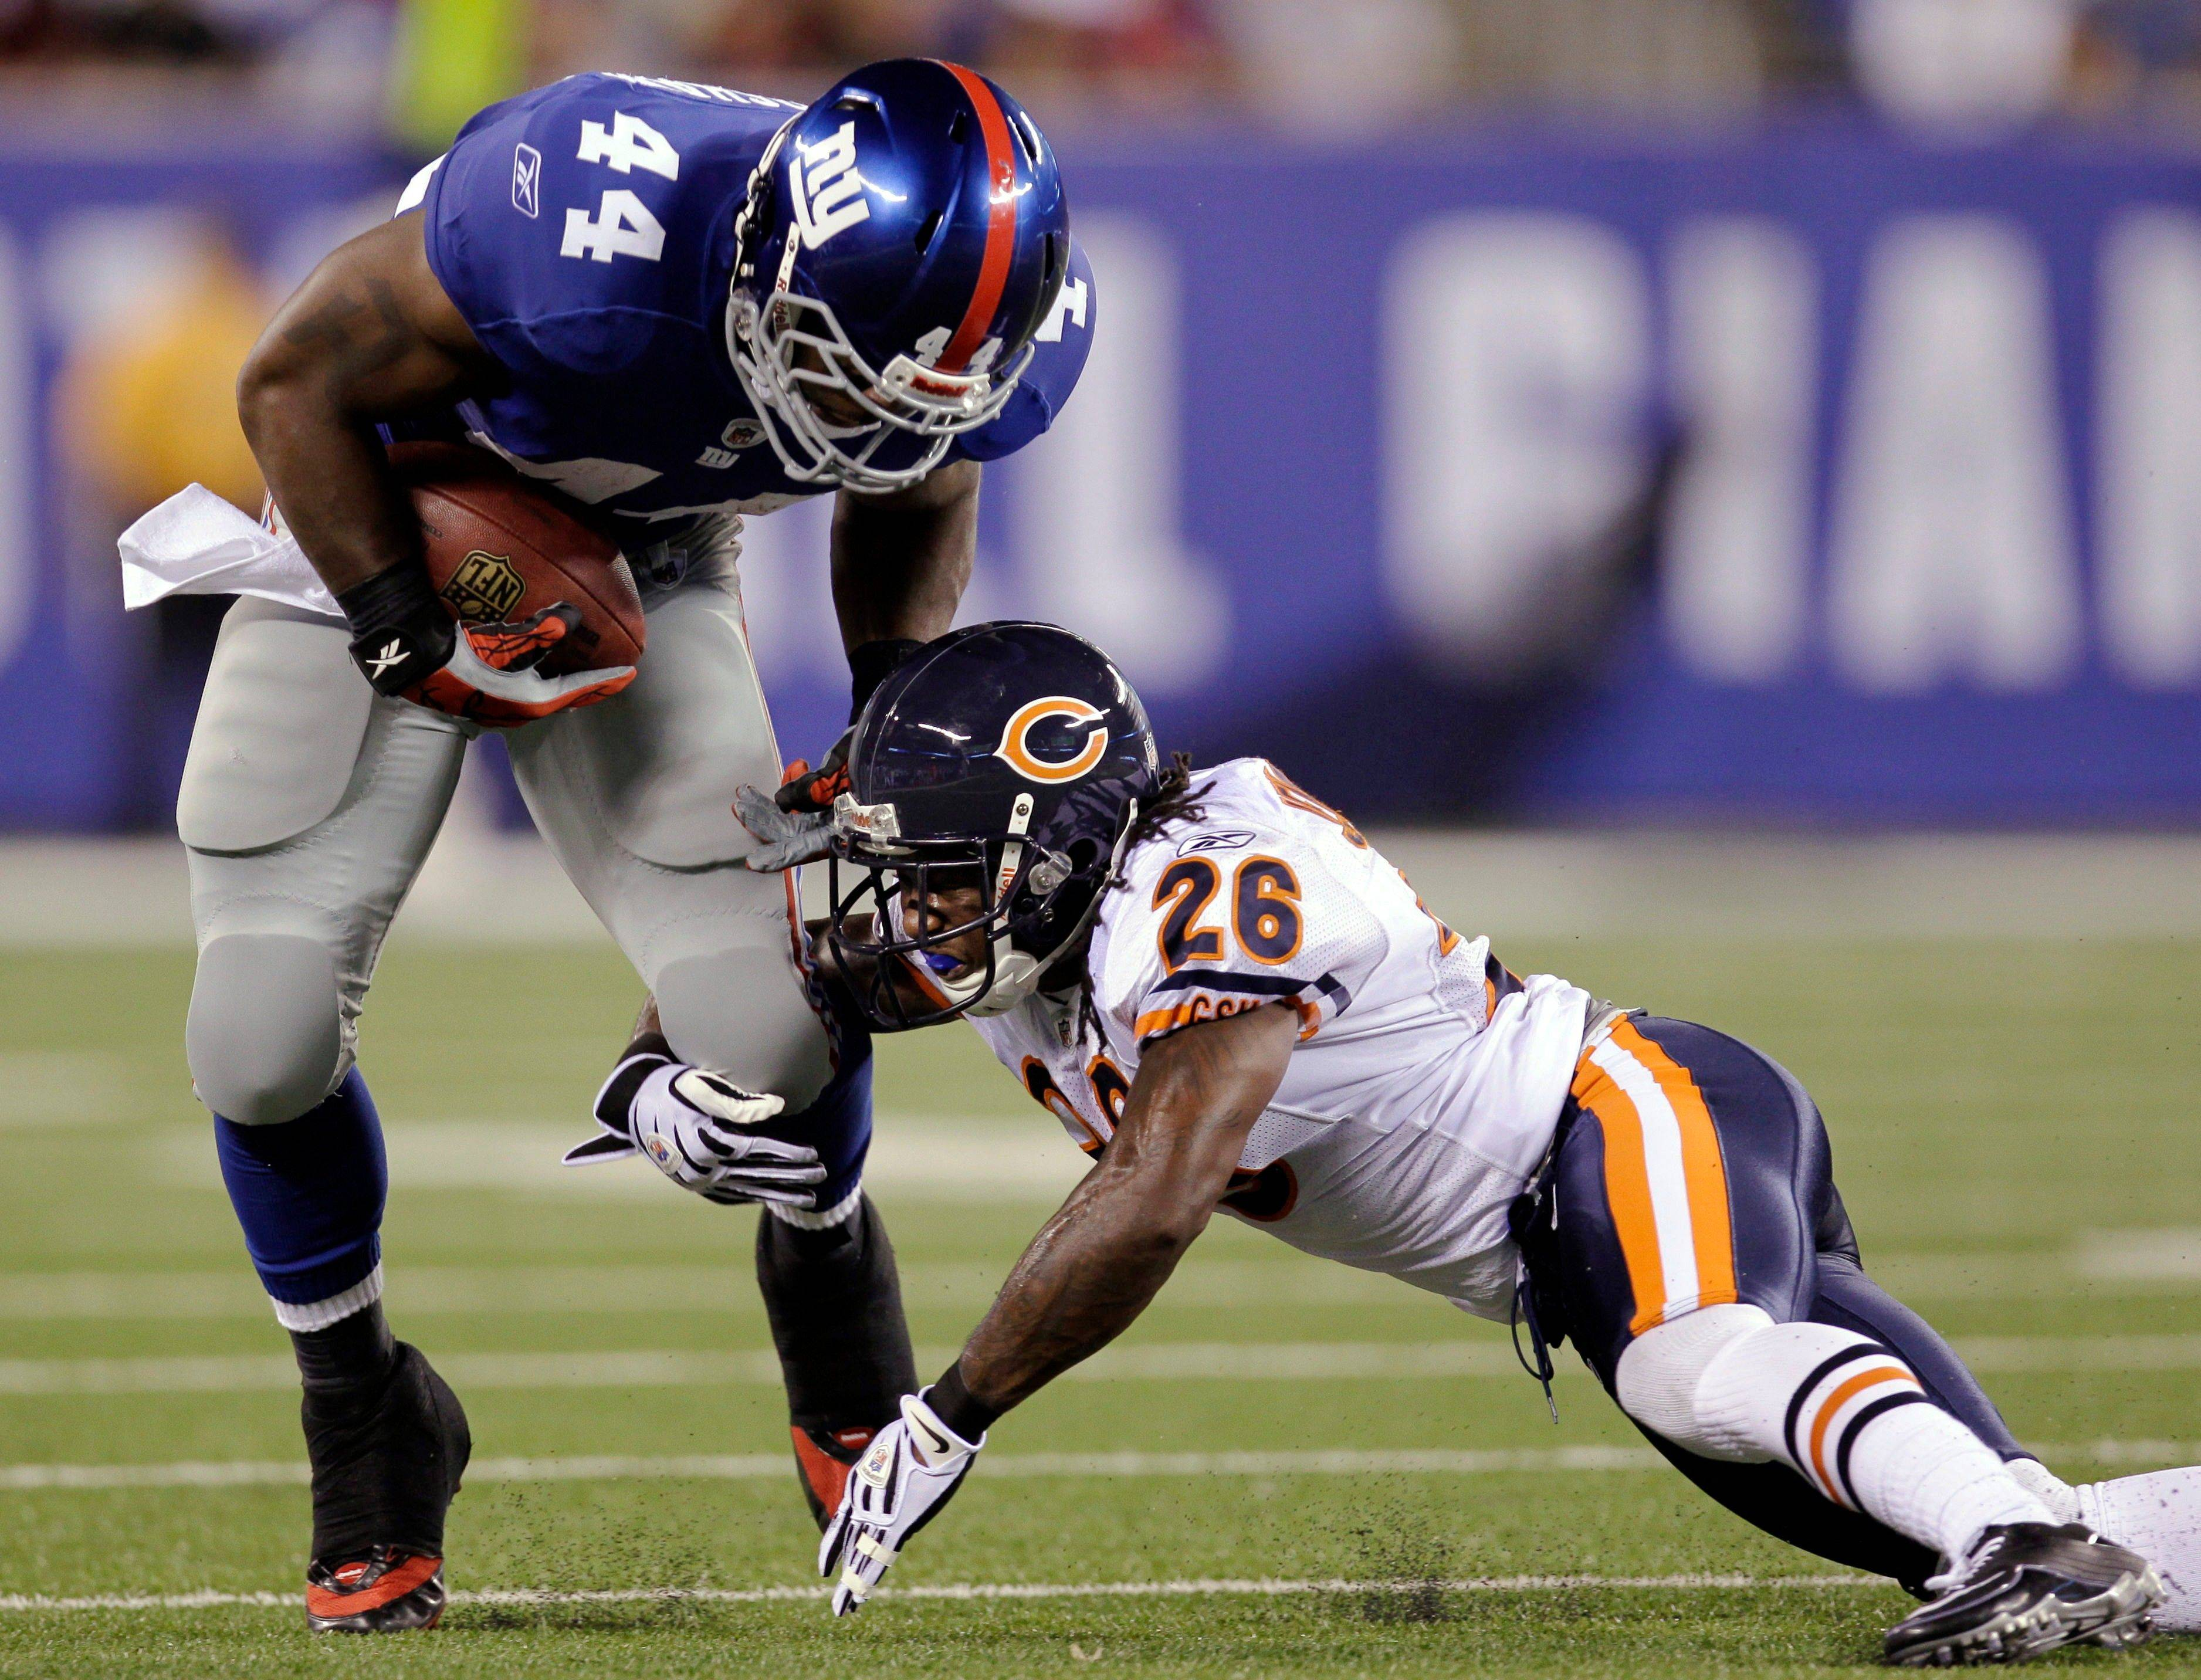 Chicago Bears cornerback Tim Jennings tackles New York Giants running back Ahmad Bradshaw during the first quarter.